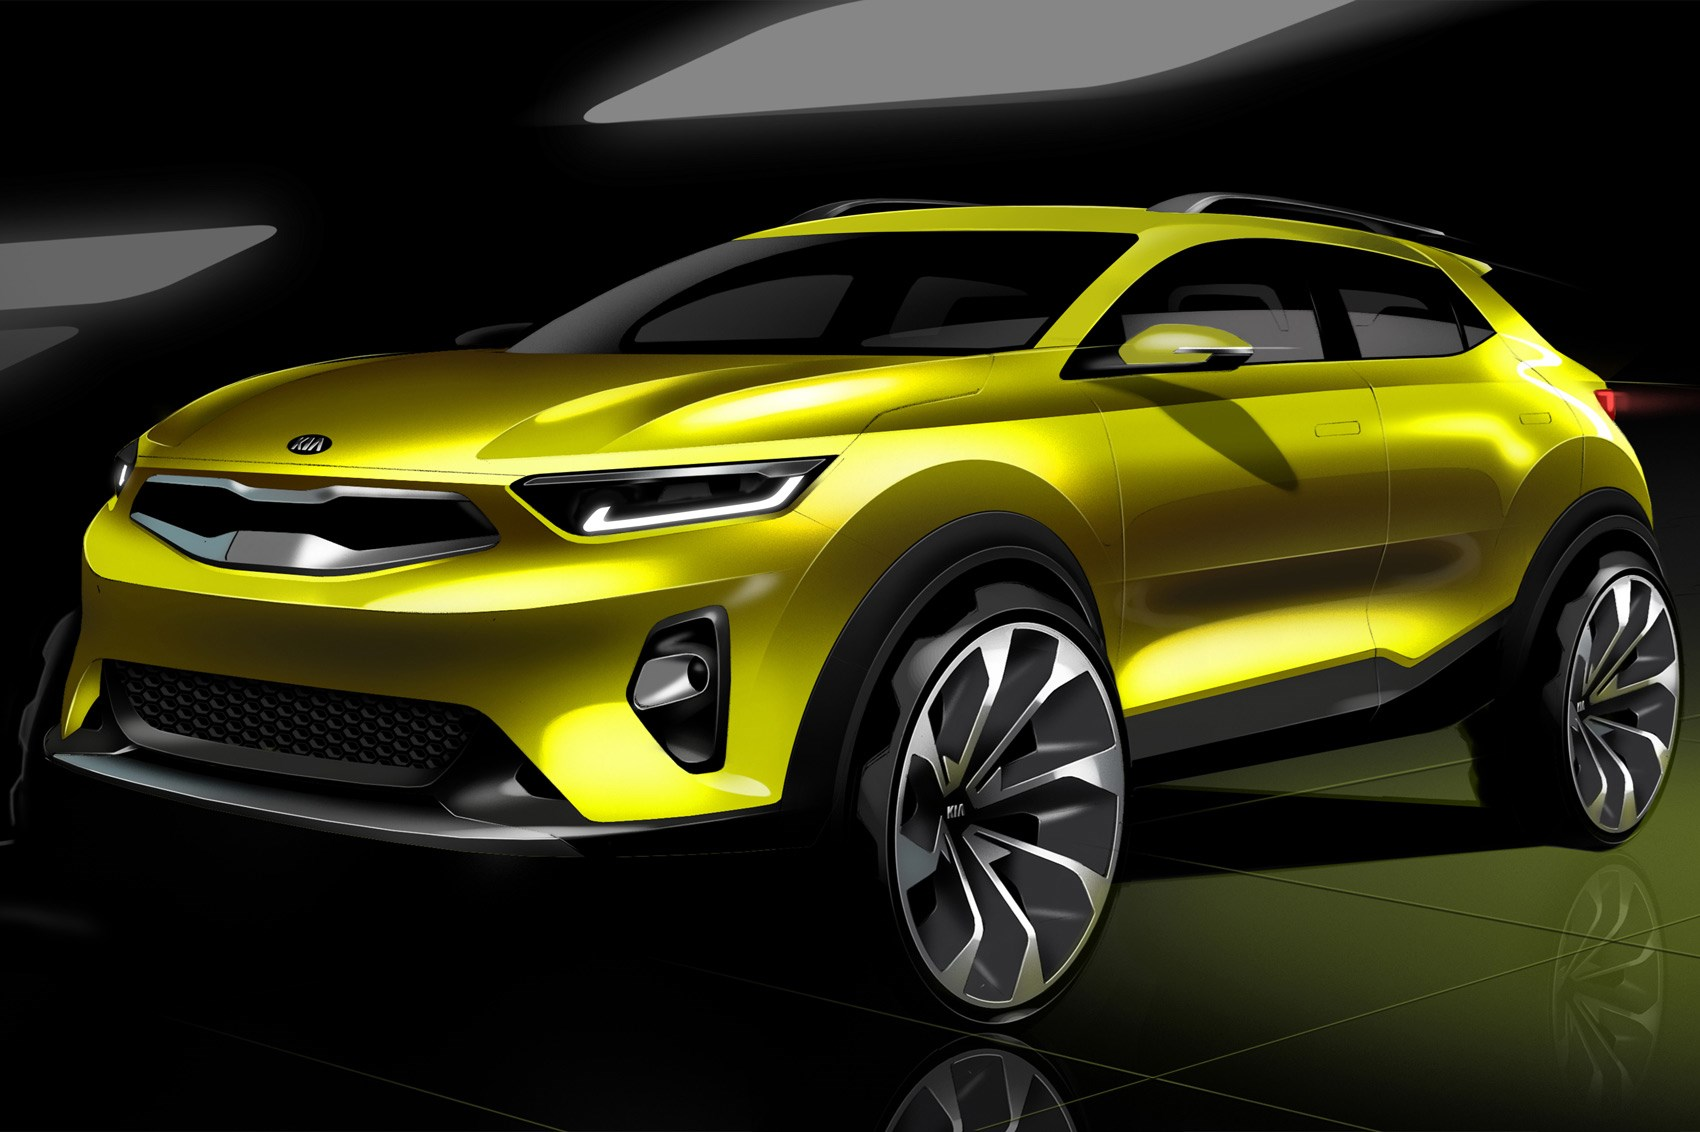 Kia's new Juke rival revealed